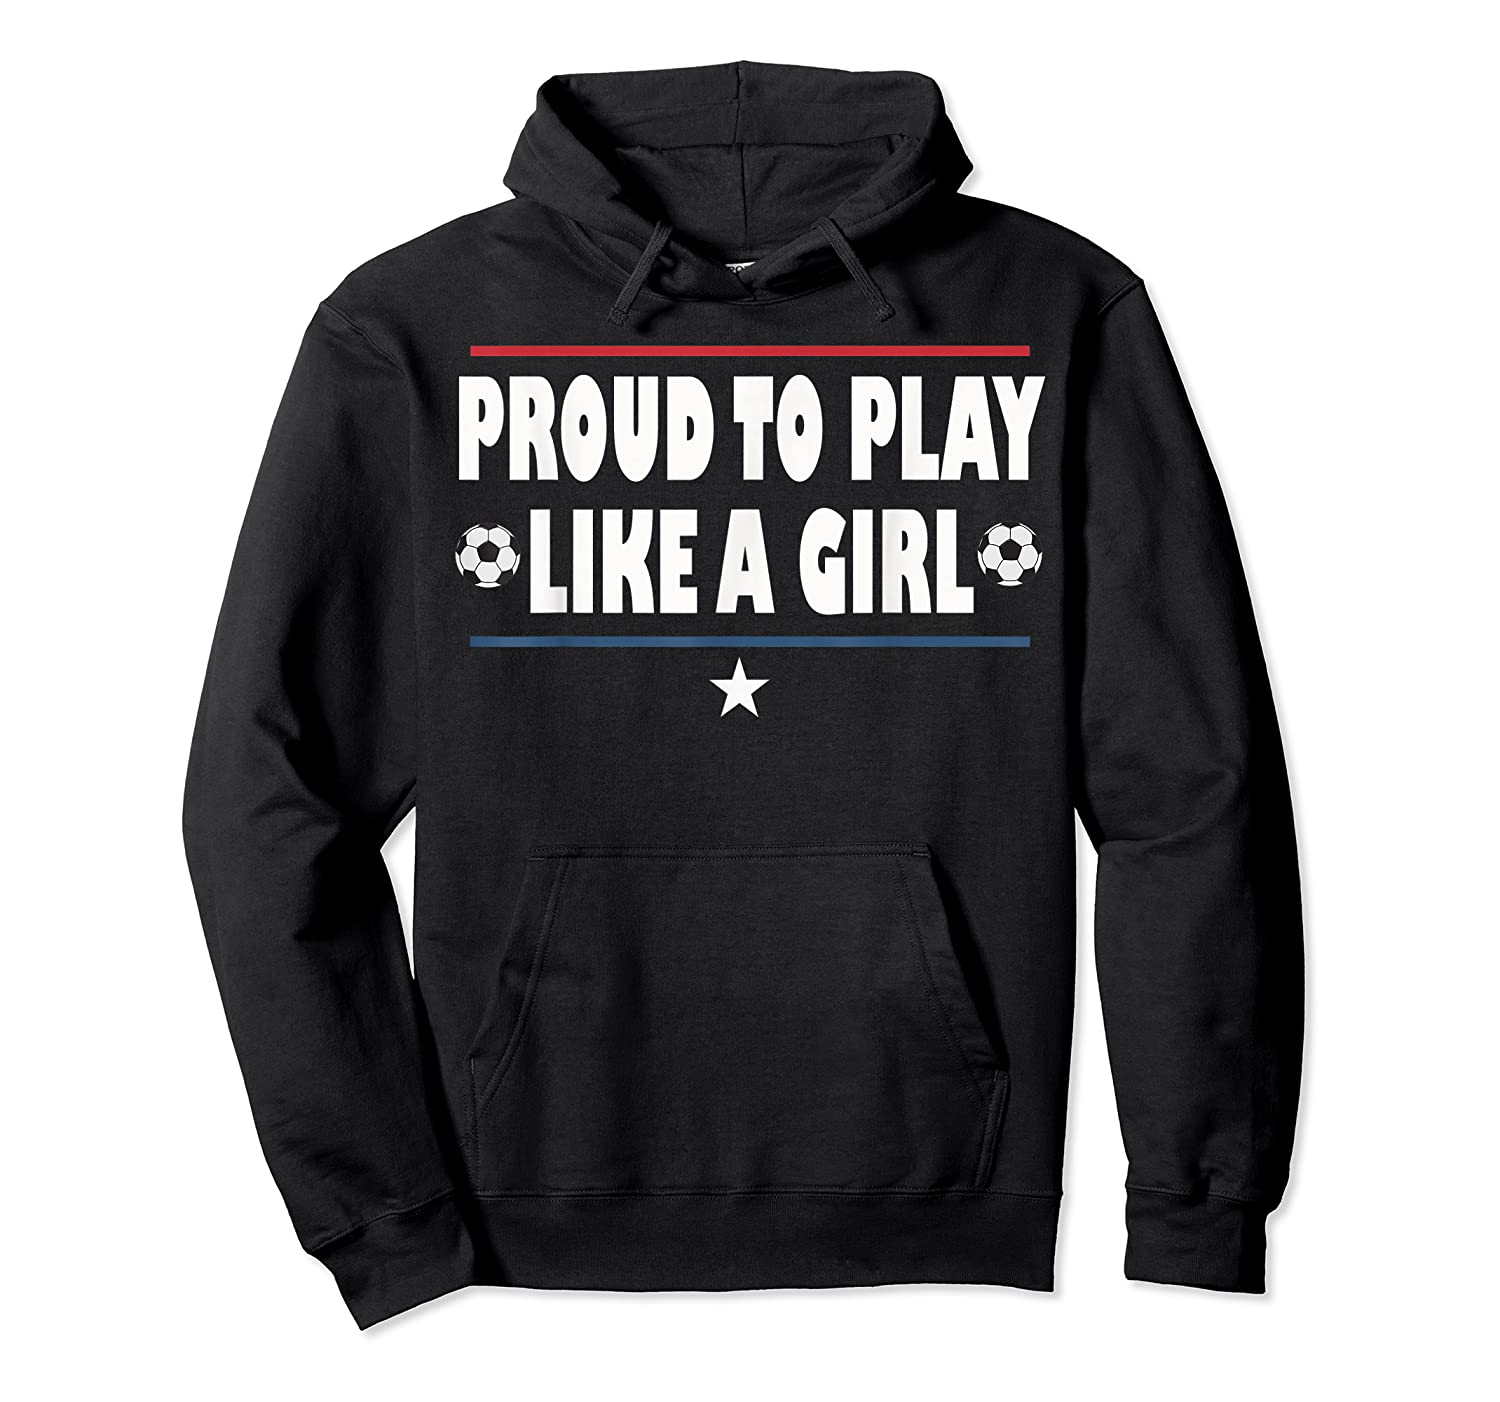 Proud To Play Like A Girl Funny Usa Soccer Gift Shirts Unisex Pullover Hoodie